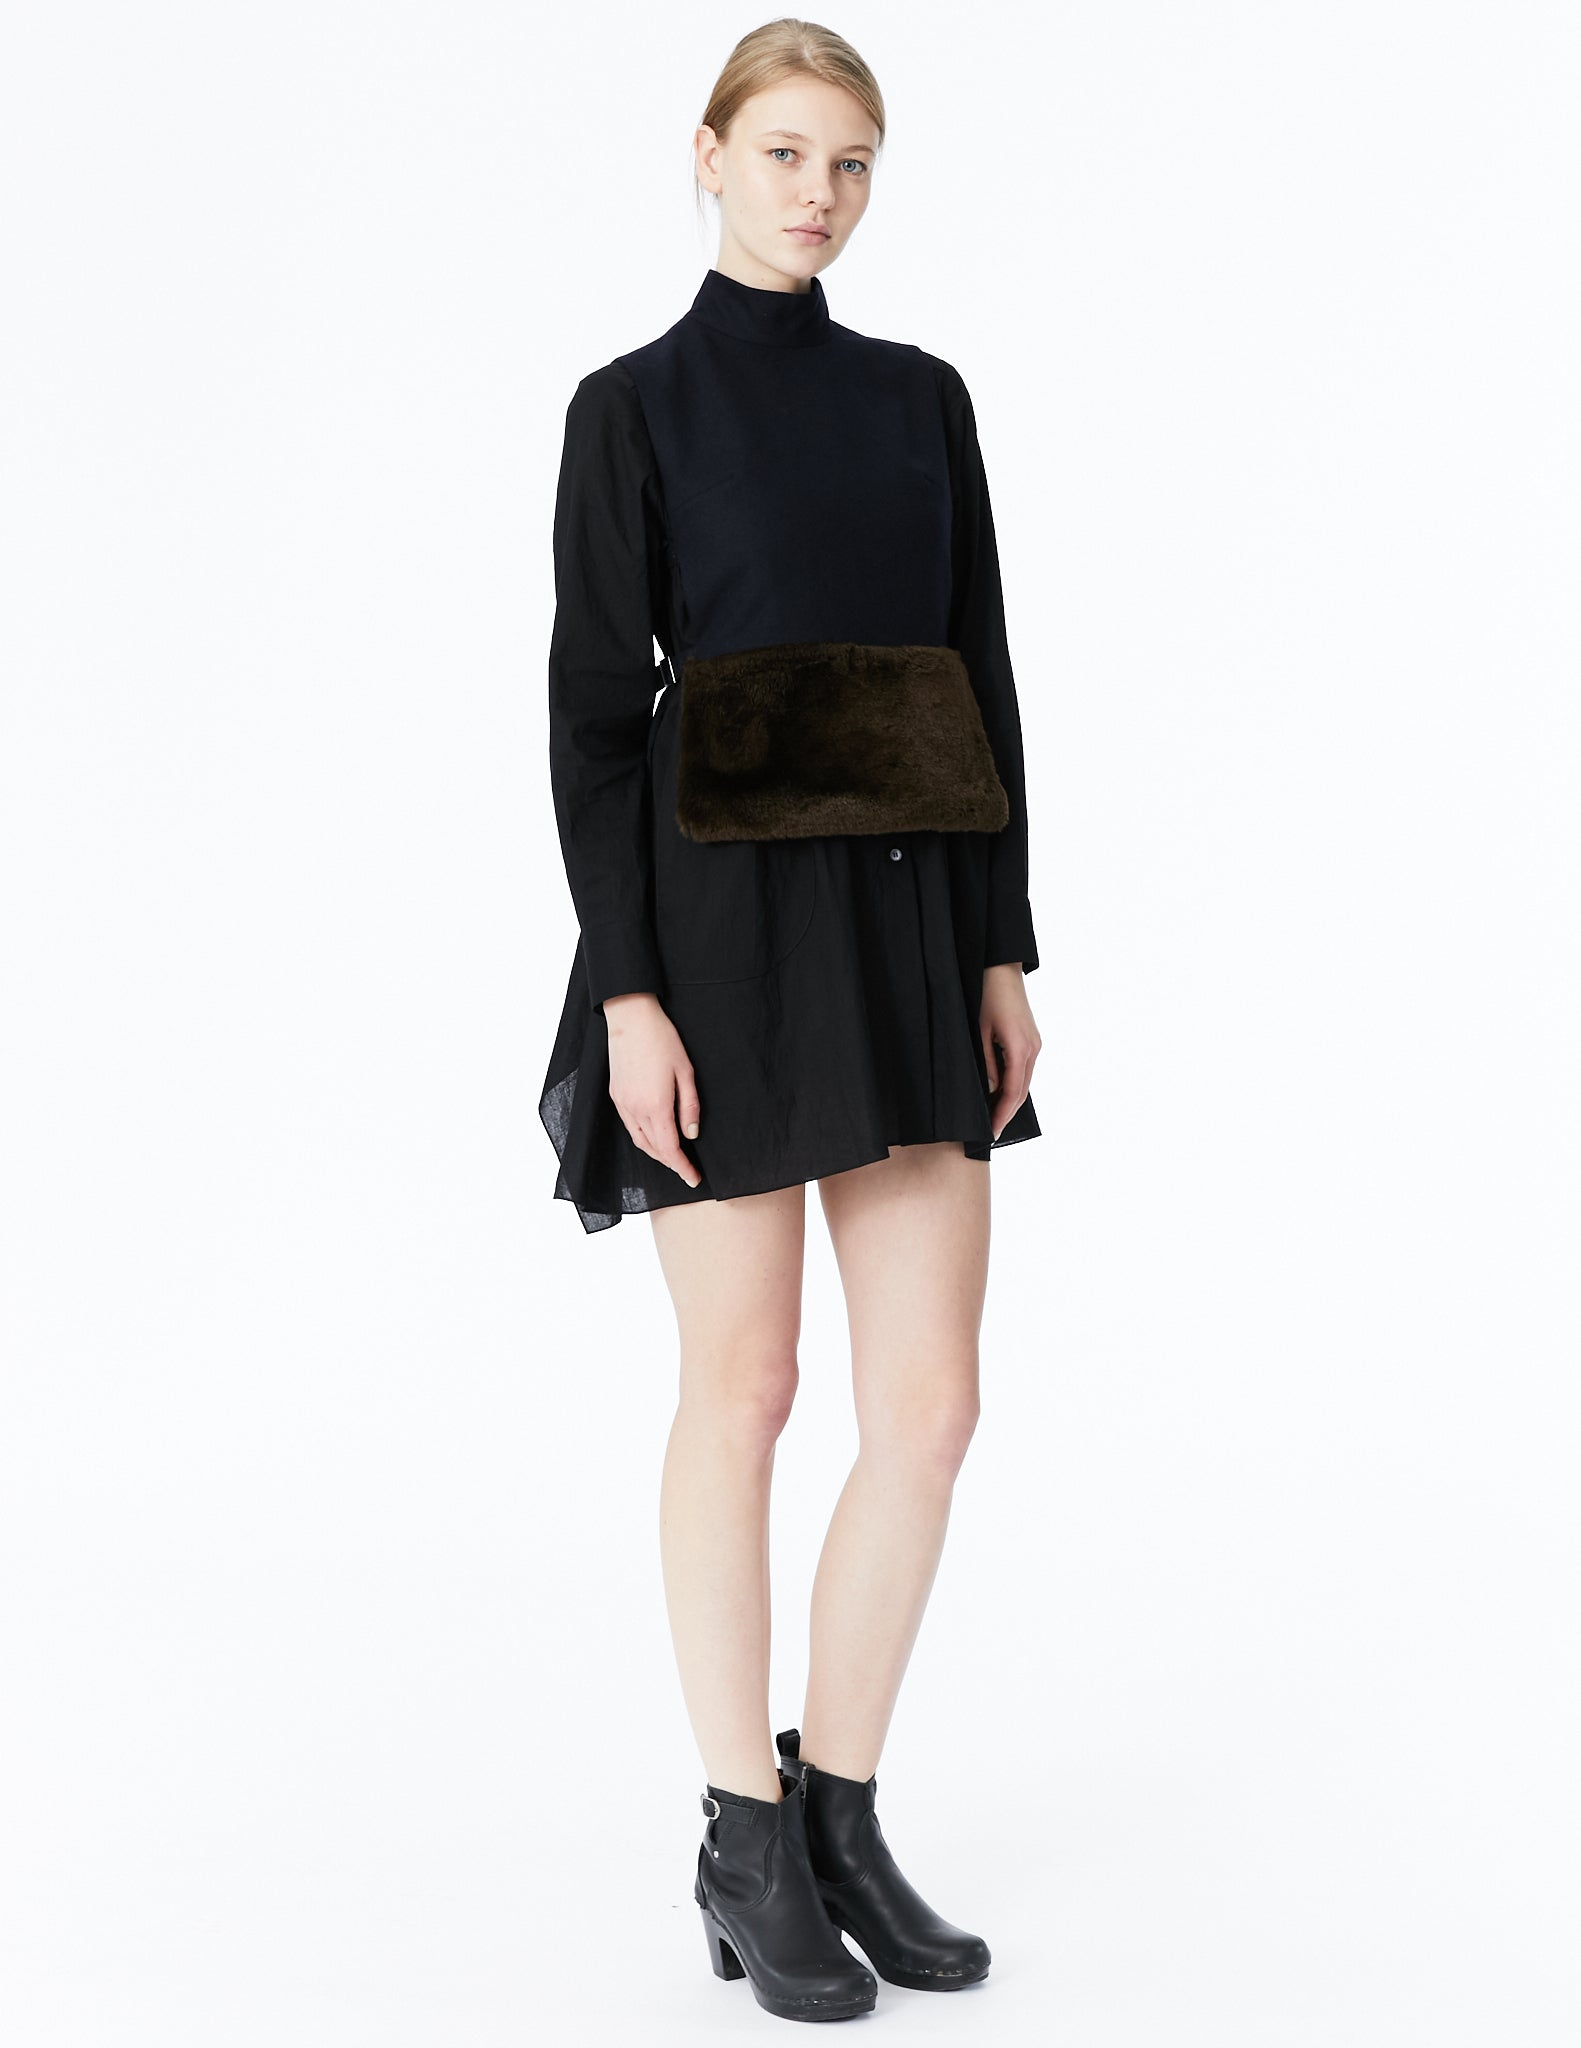 morgane le fay cropped peplum vest with adjustable ties, high collar and faux fur